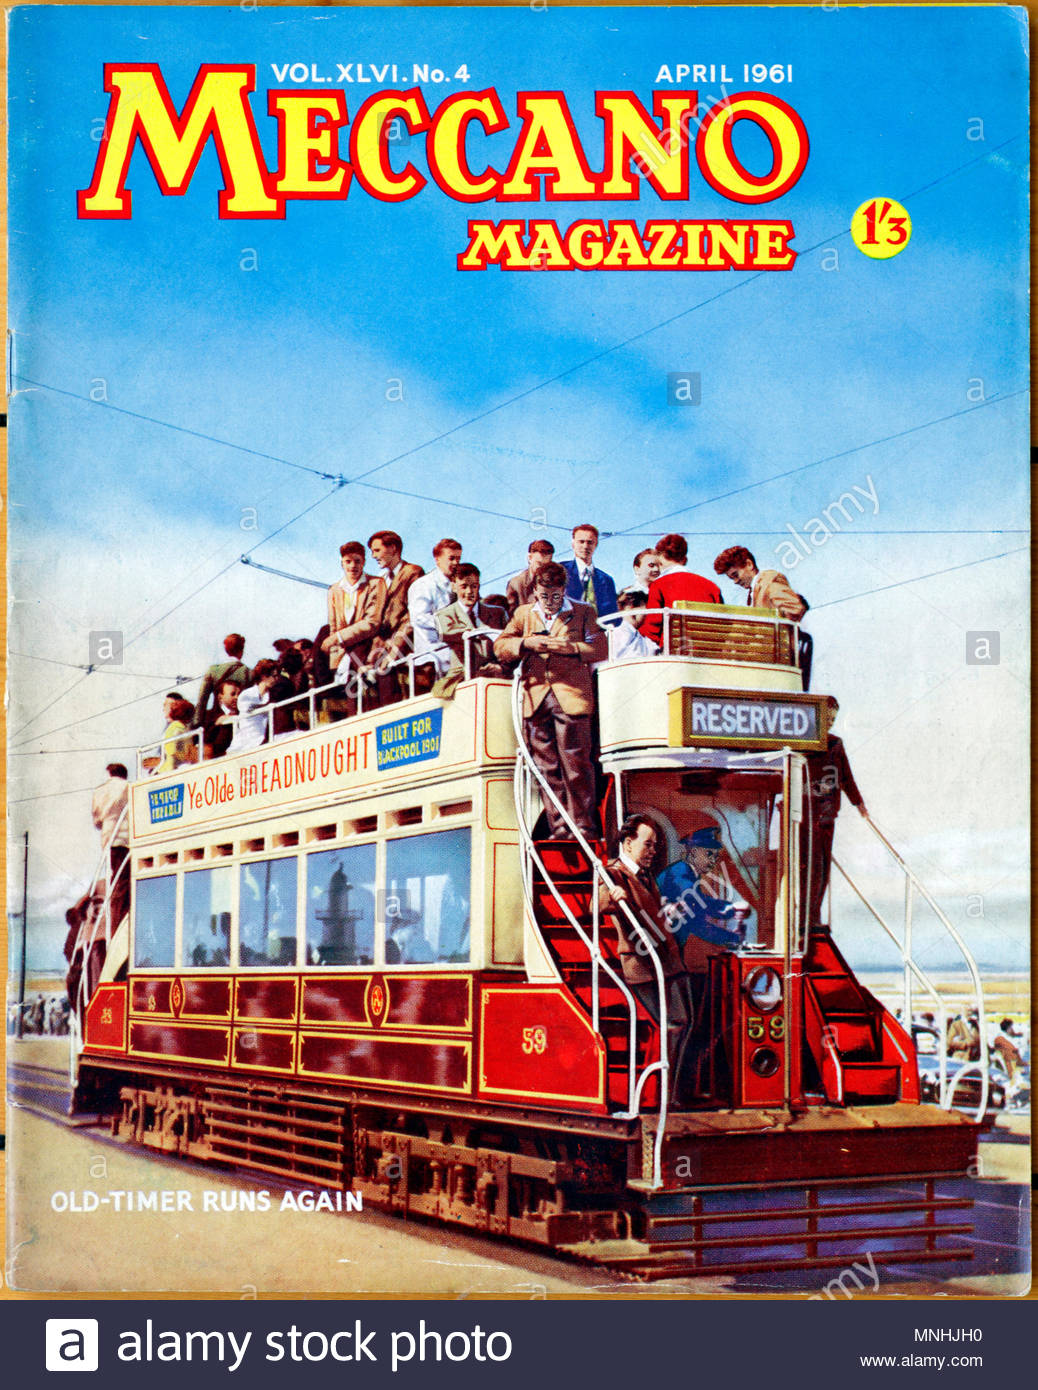 Meccano Monthly Magazine, April 1961 - Stock Image